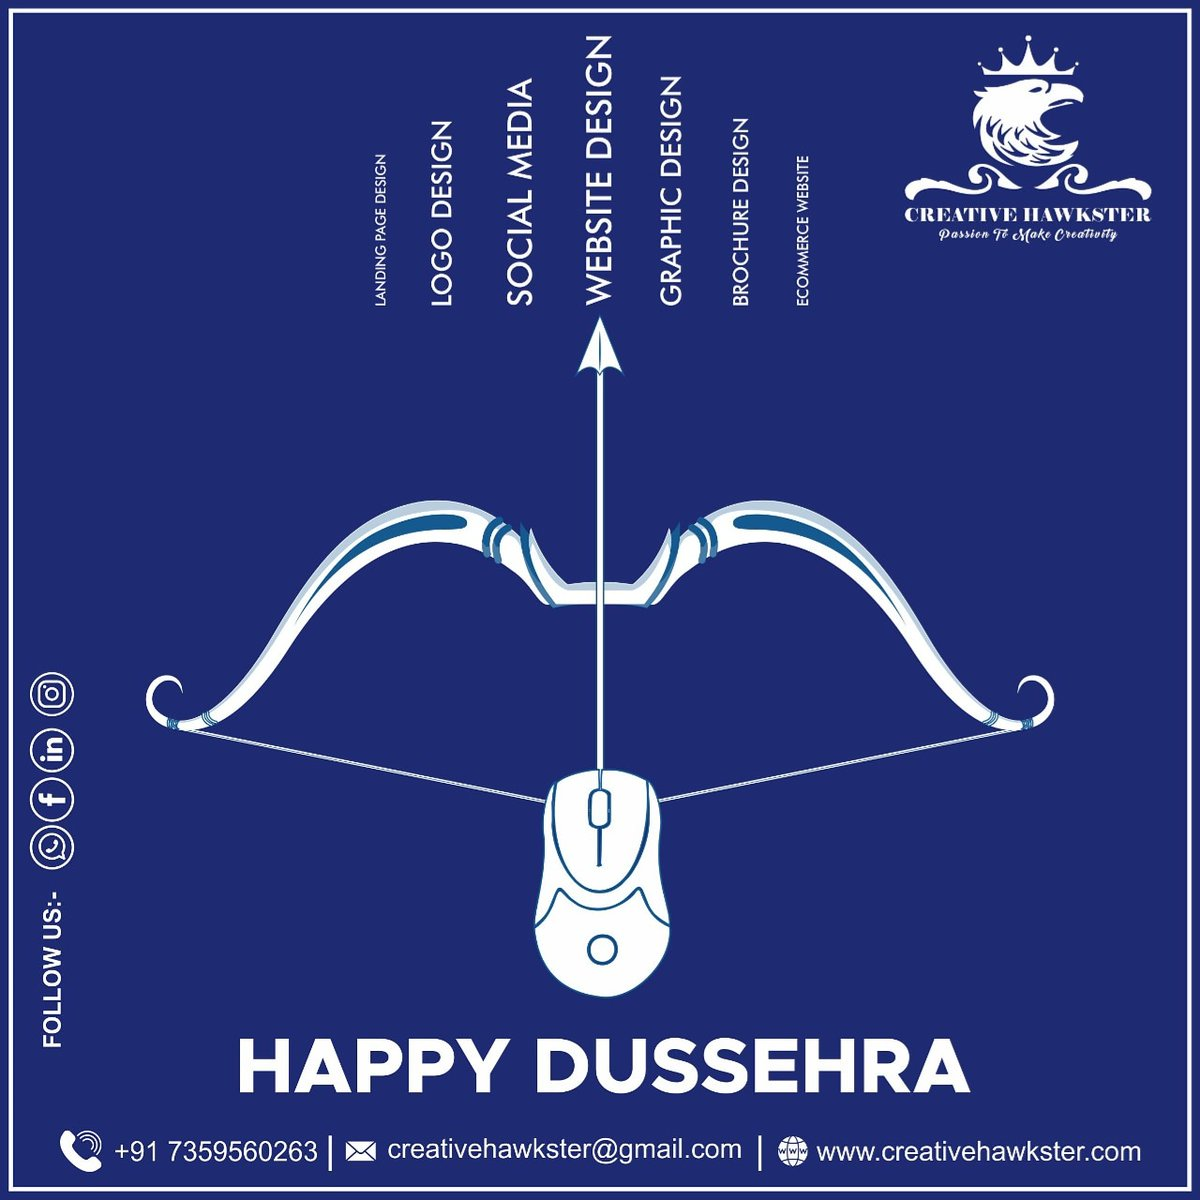 Let us create a new life by conquering our five eternal evils - Kaam, Lobh, Krodh, Moh, Ahankar. Happy Dussehra! May your path be lit by light, strength and fortune.   #ourvadodara #ahmedabad #Dussehra #Bollywood #hotel #restaurant #realestate https://t.co/QBd5ab9X1c